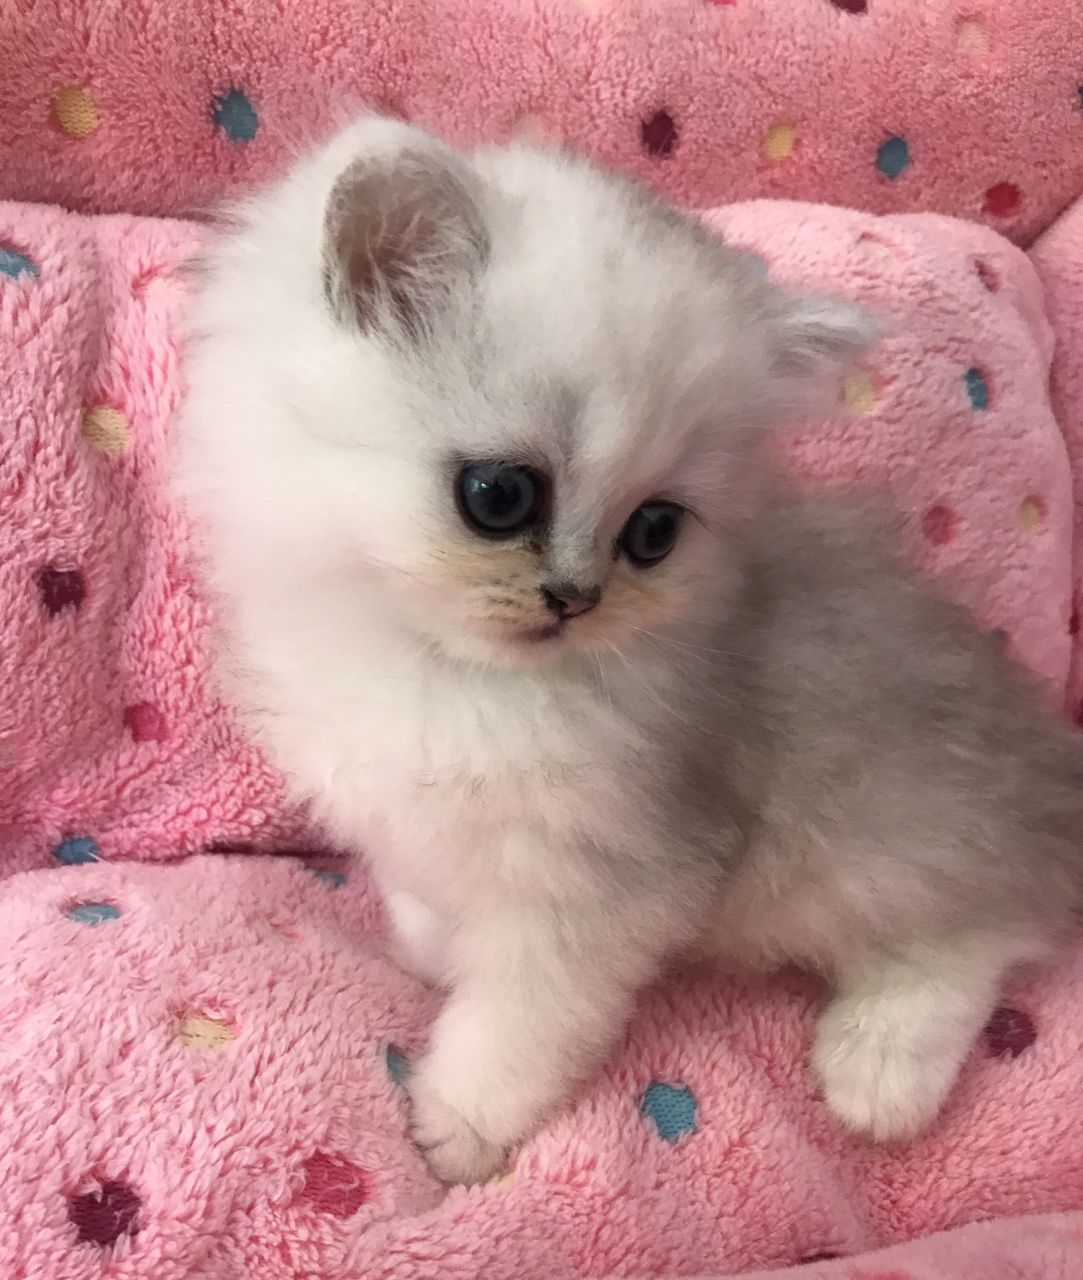 Kuwait Cats and kittens for sale Super Cute Blue Eyed Persian